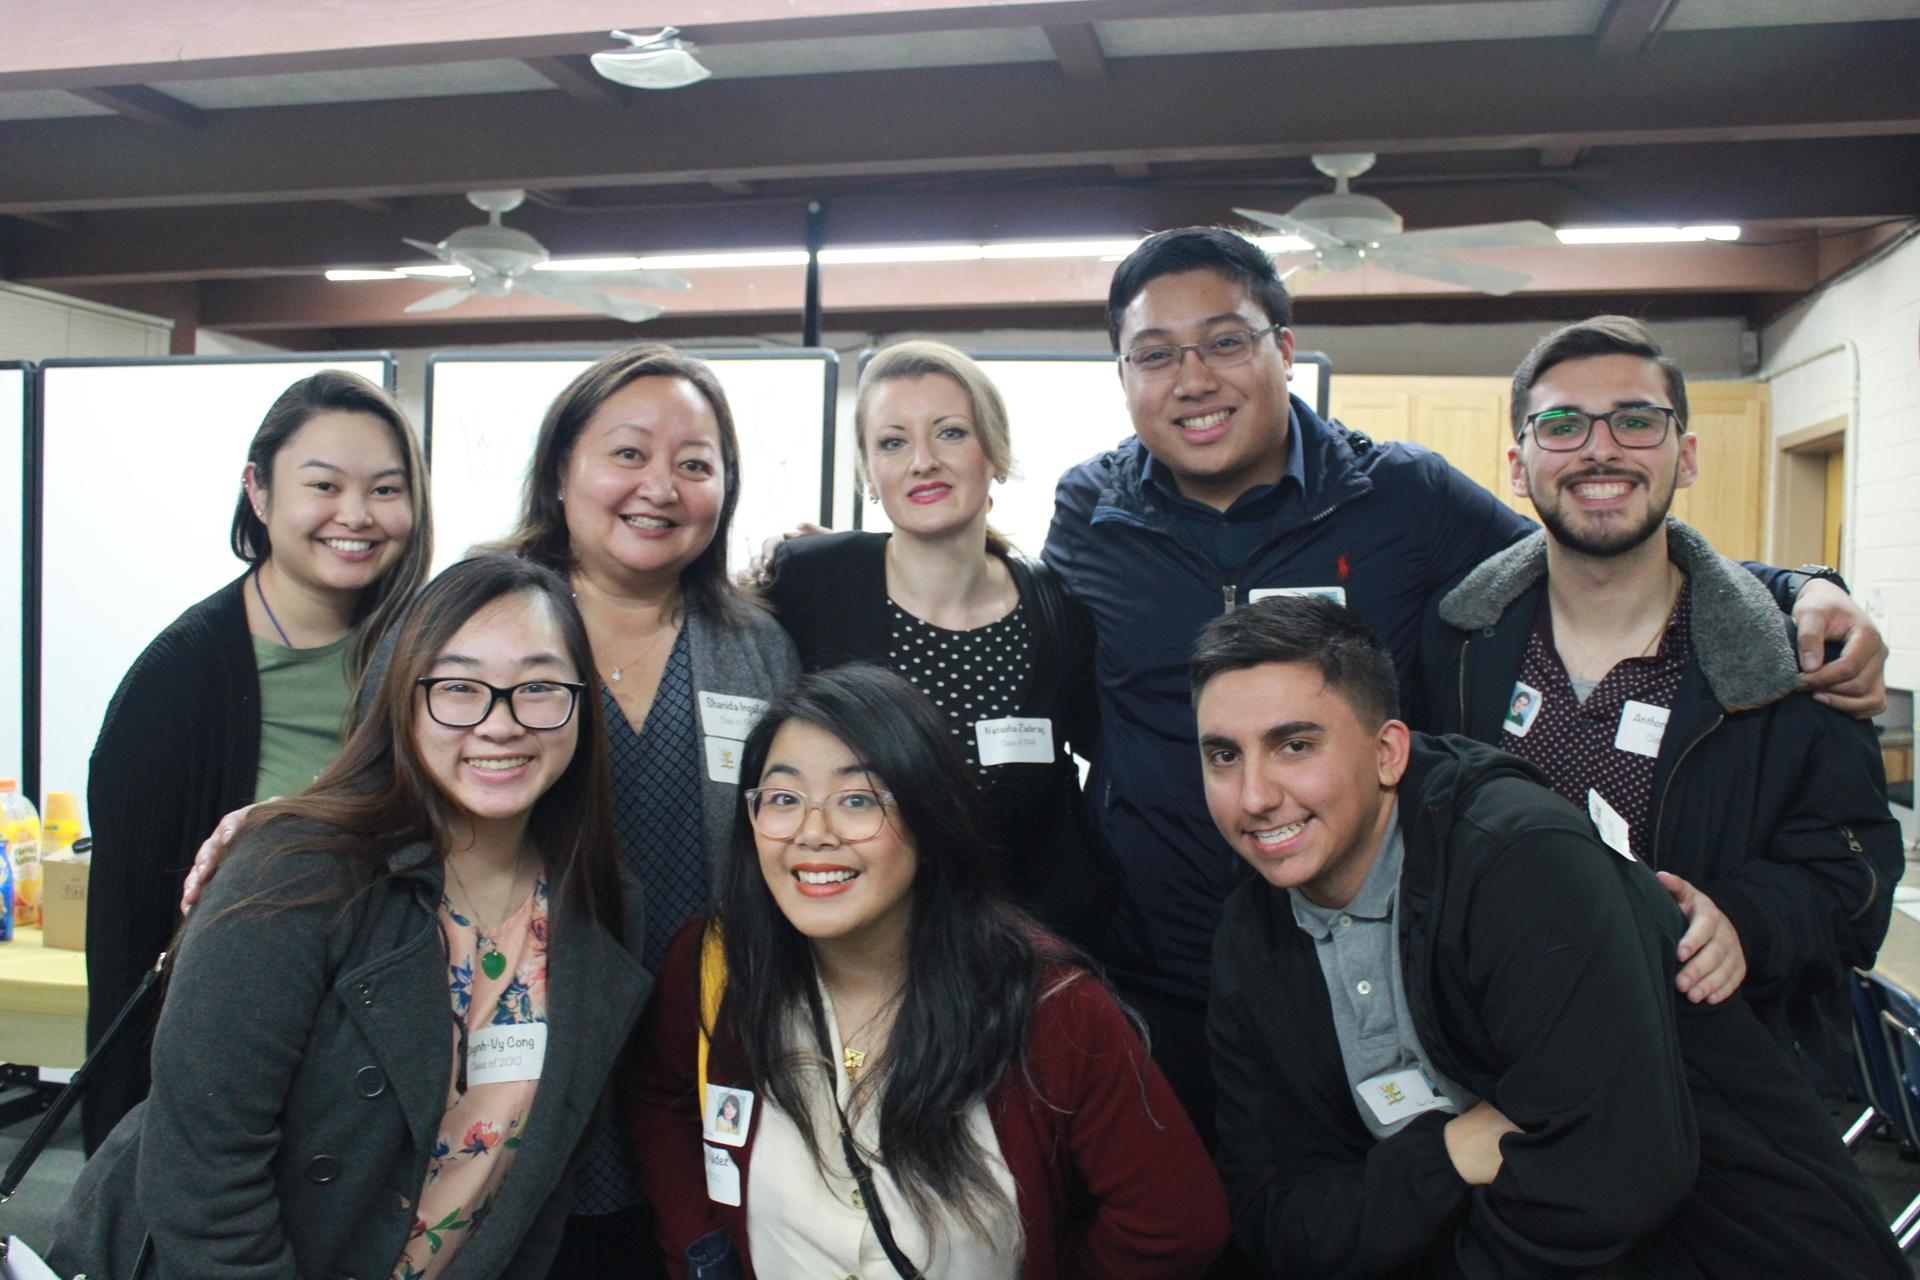 Our Hornet Alumni came back to talk to each class about their careers.  Bottom row from left to right:  Quynh-Vy Cong, Shelley Valdez, Robert Peña Top row left to right: Reliann Viray, Shanida Ingalla, Natasha Zaderay, Tyler Piedad, Anthony Machado